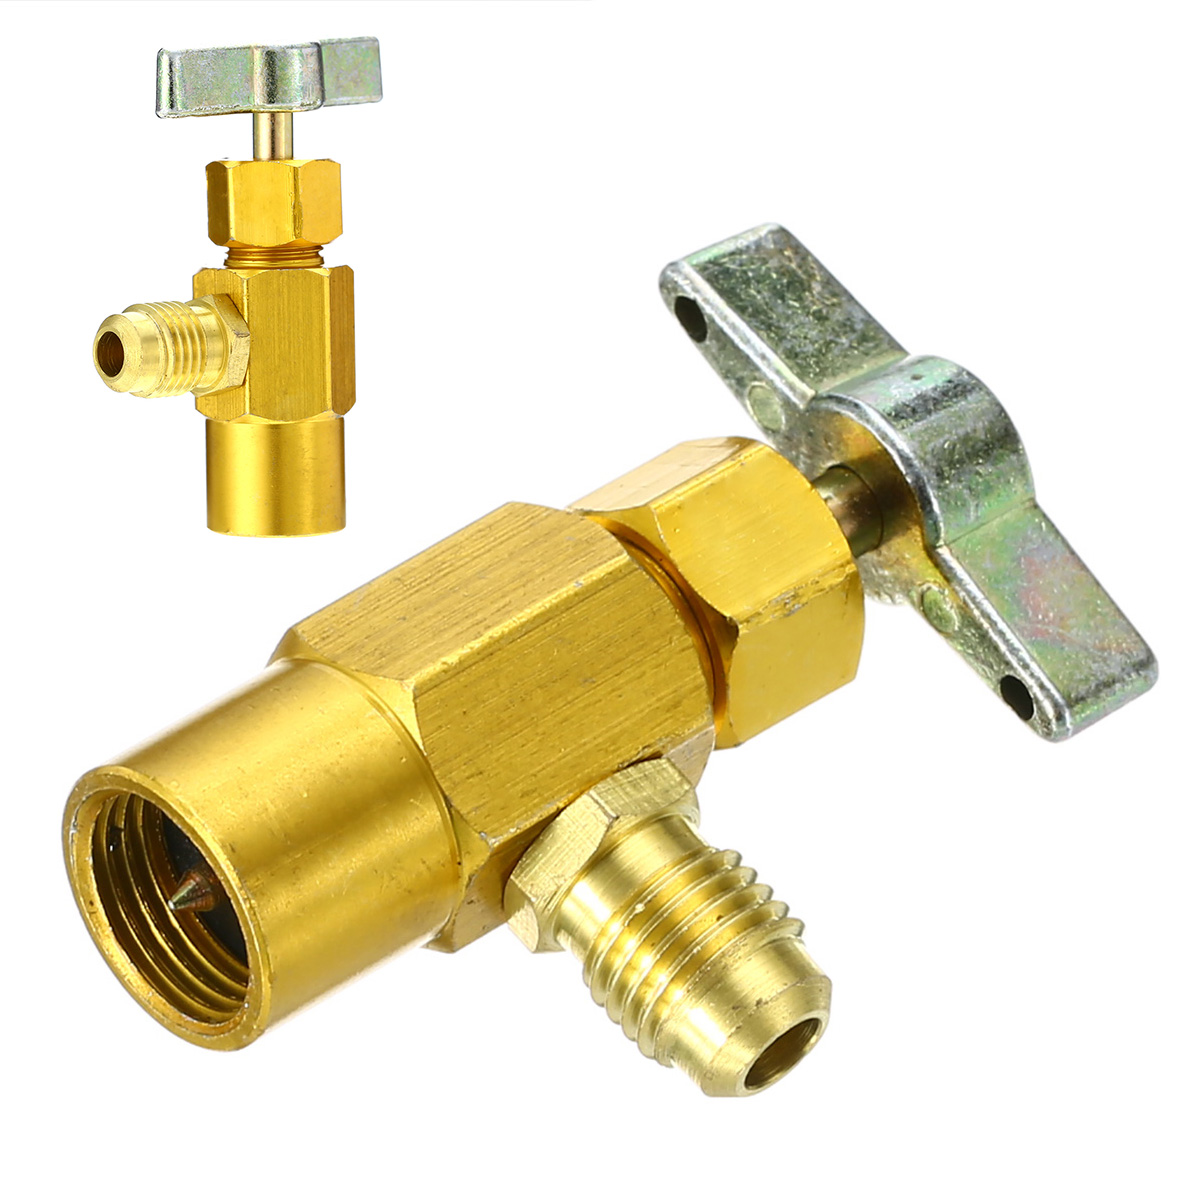 1pc Durable R-134a AC Refrigerant Can Bottle Tap Opener Valve 1/4 SAE M14 Thread Adapter Tools Part Accessories 60*35mm Mayitr